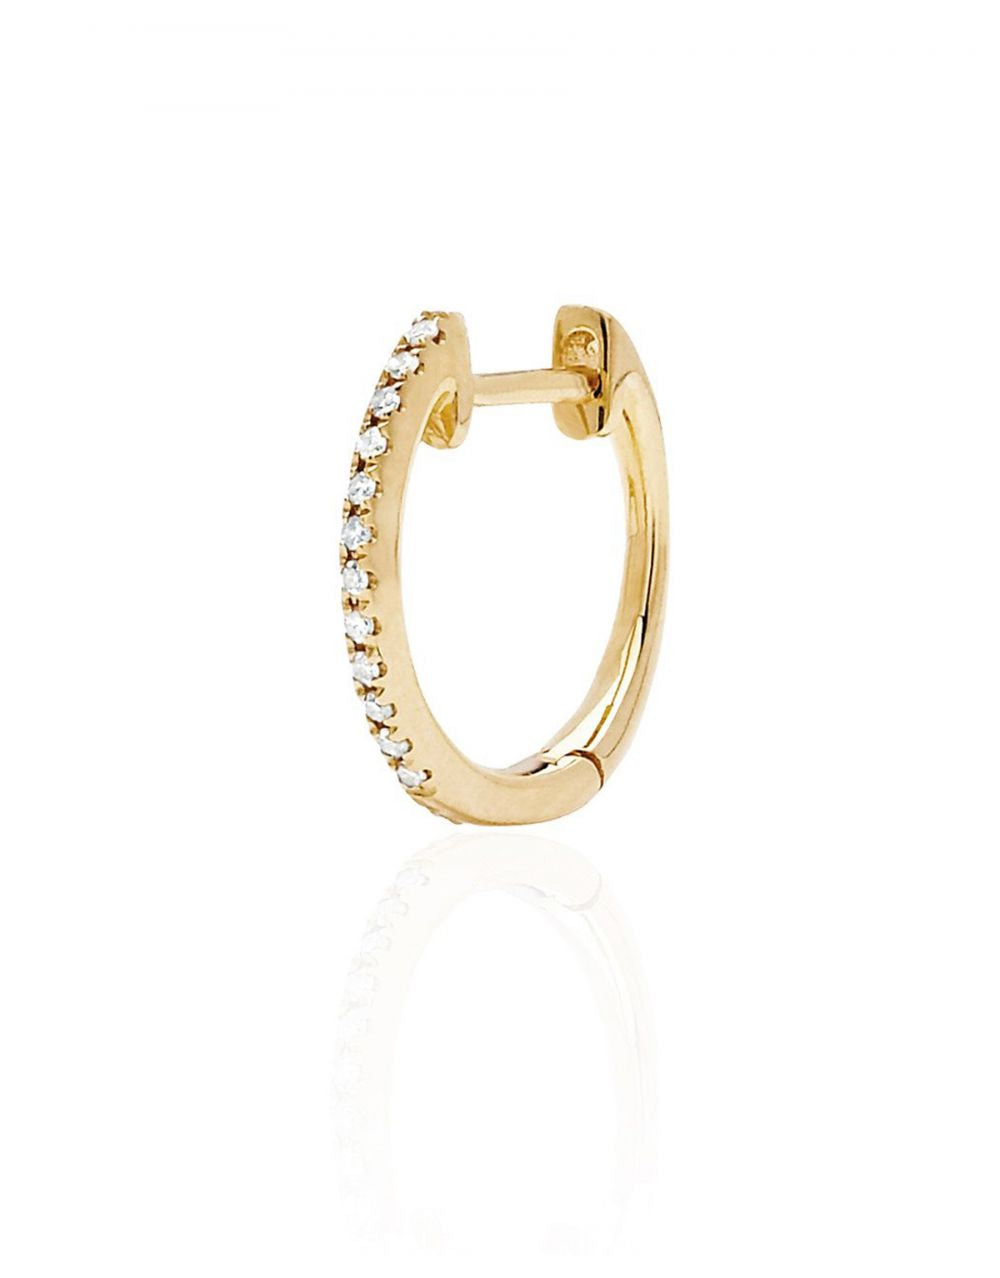 Mini Diamond Hoop Piercing<br /><i><small>14K Yellow Gold with White Diamonds</small></i><br /> - Eddera